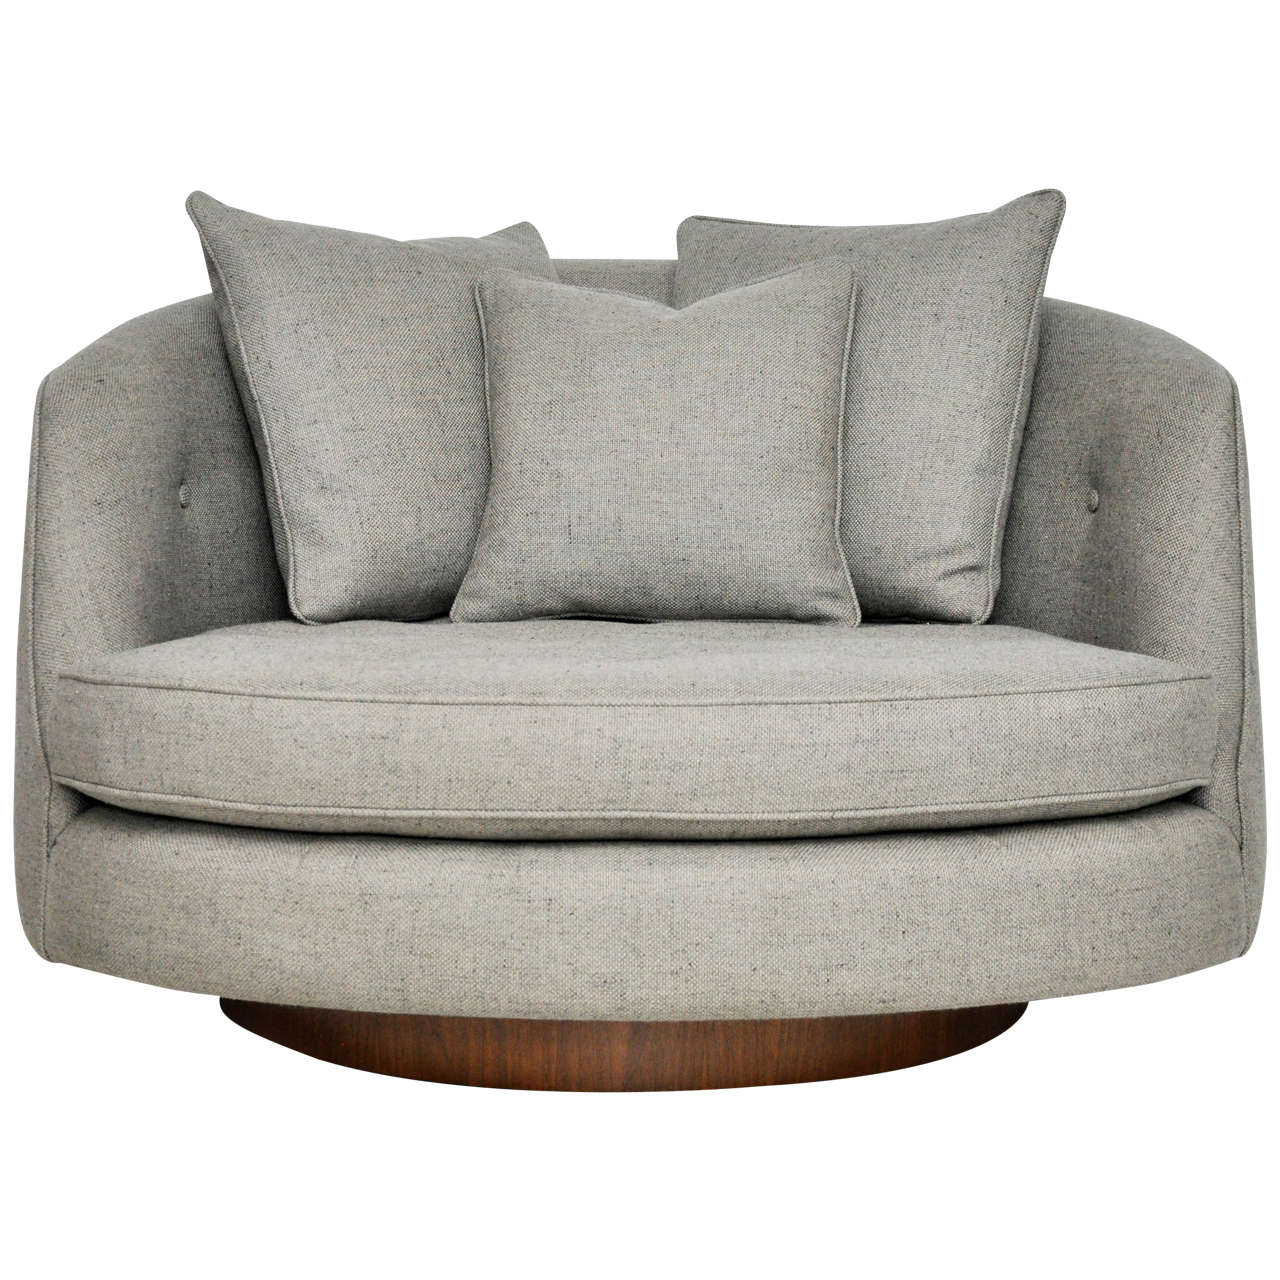 Milo baughman large swivel chair at 1stdibs for Large armchair